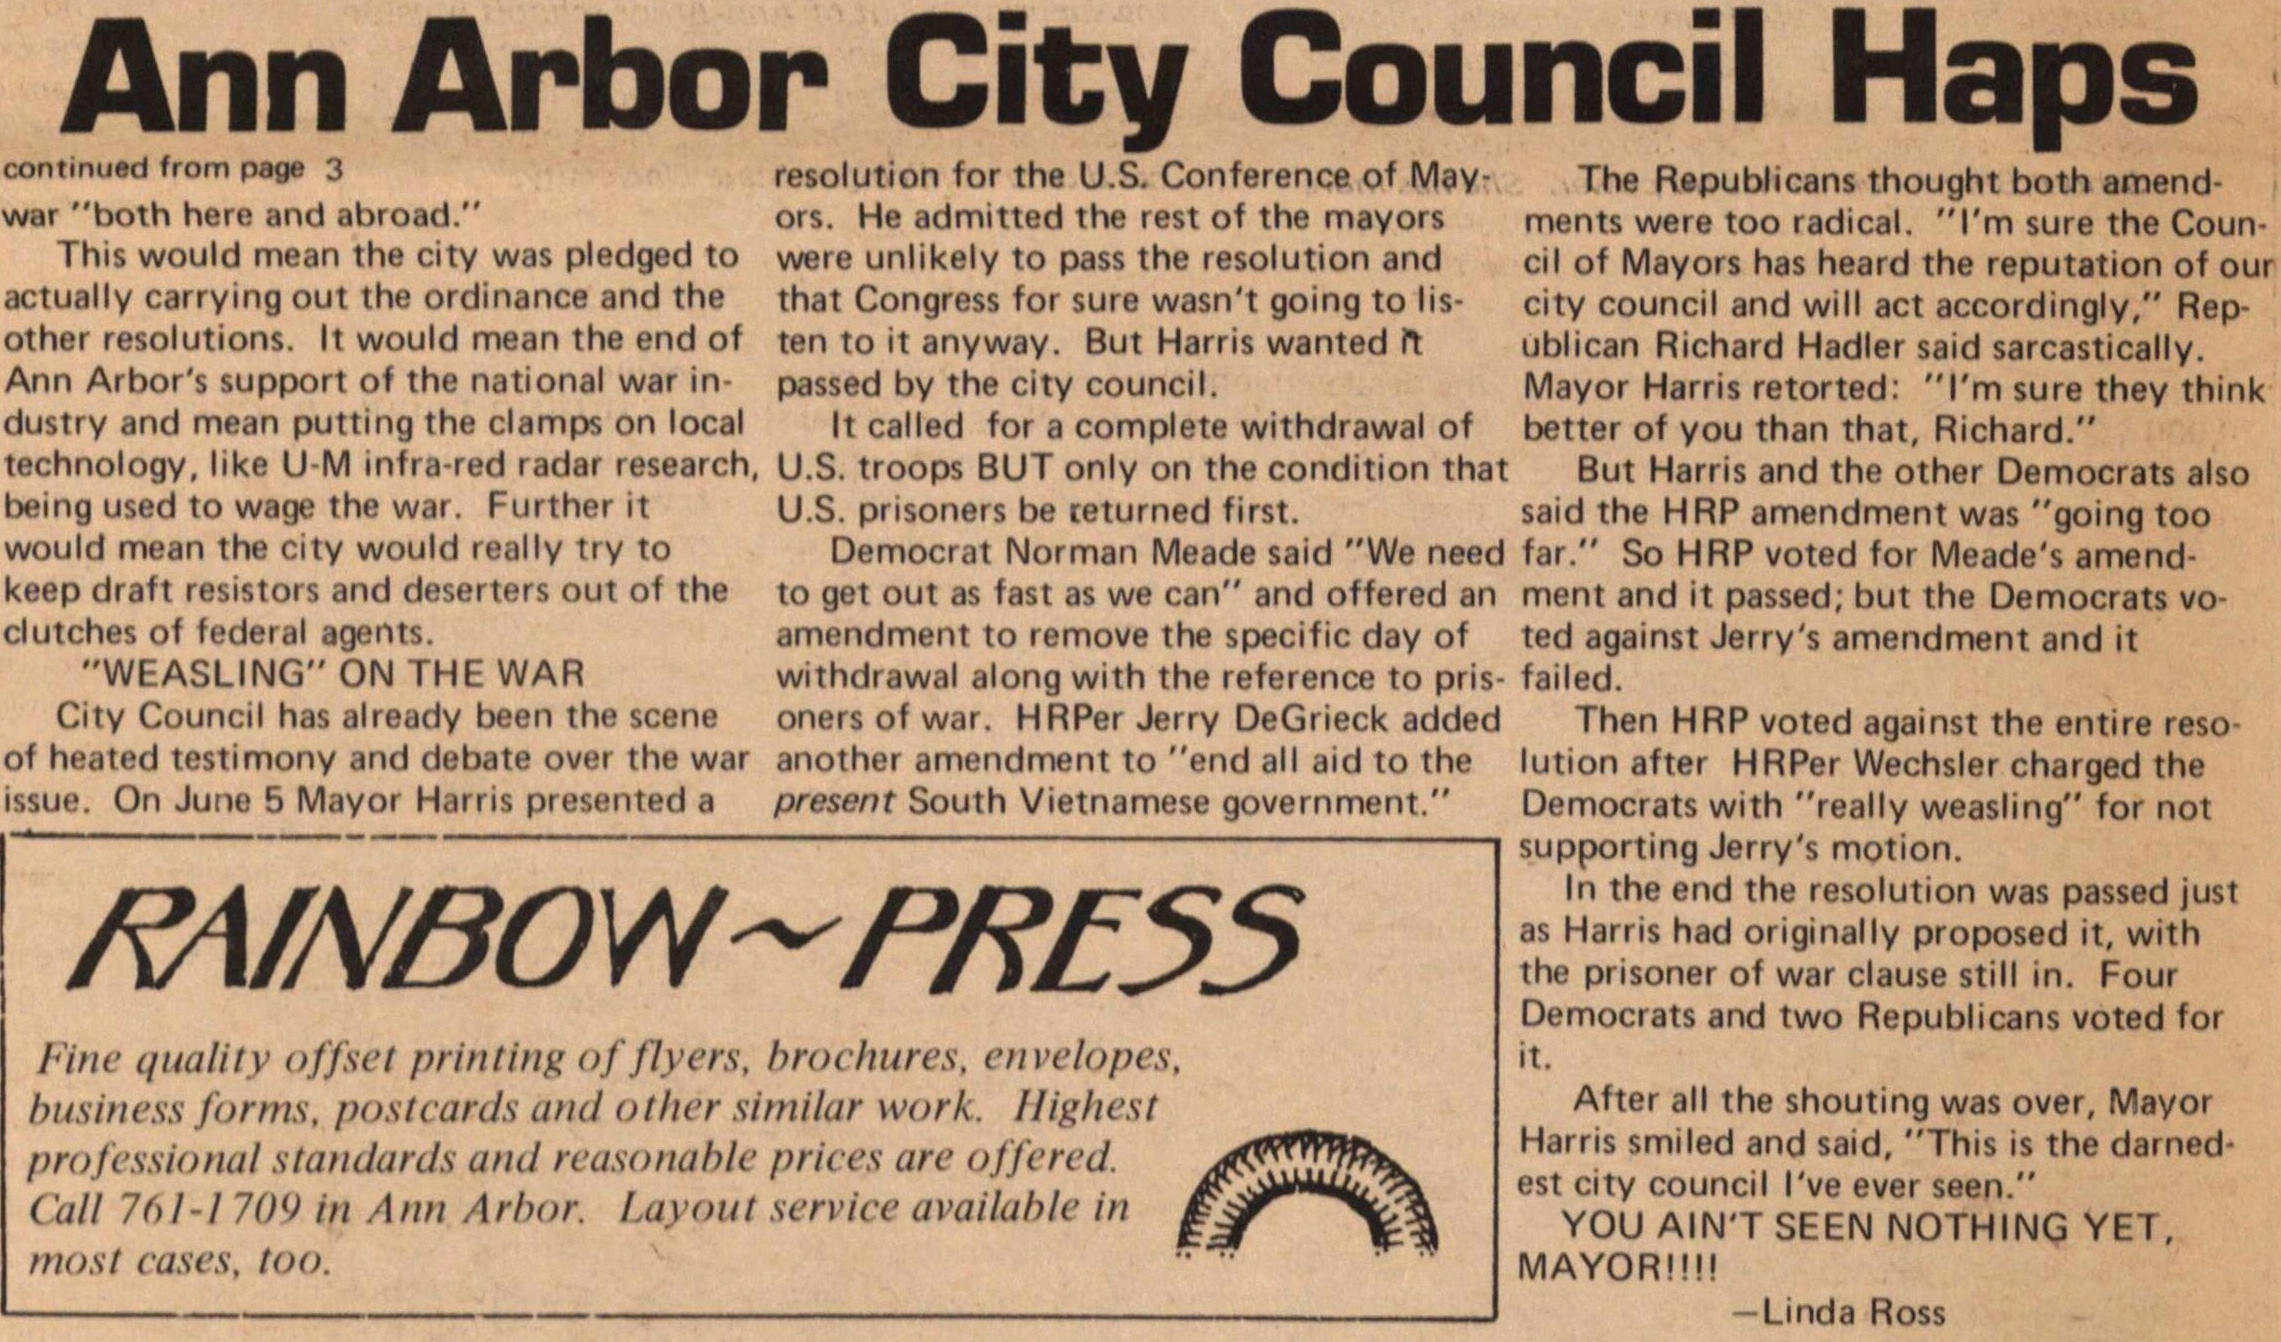 Ann Arbor City Council Haps continued fr... image